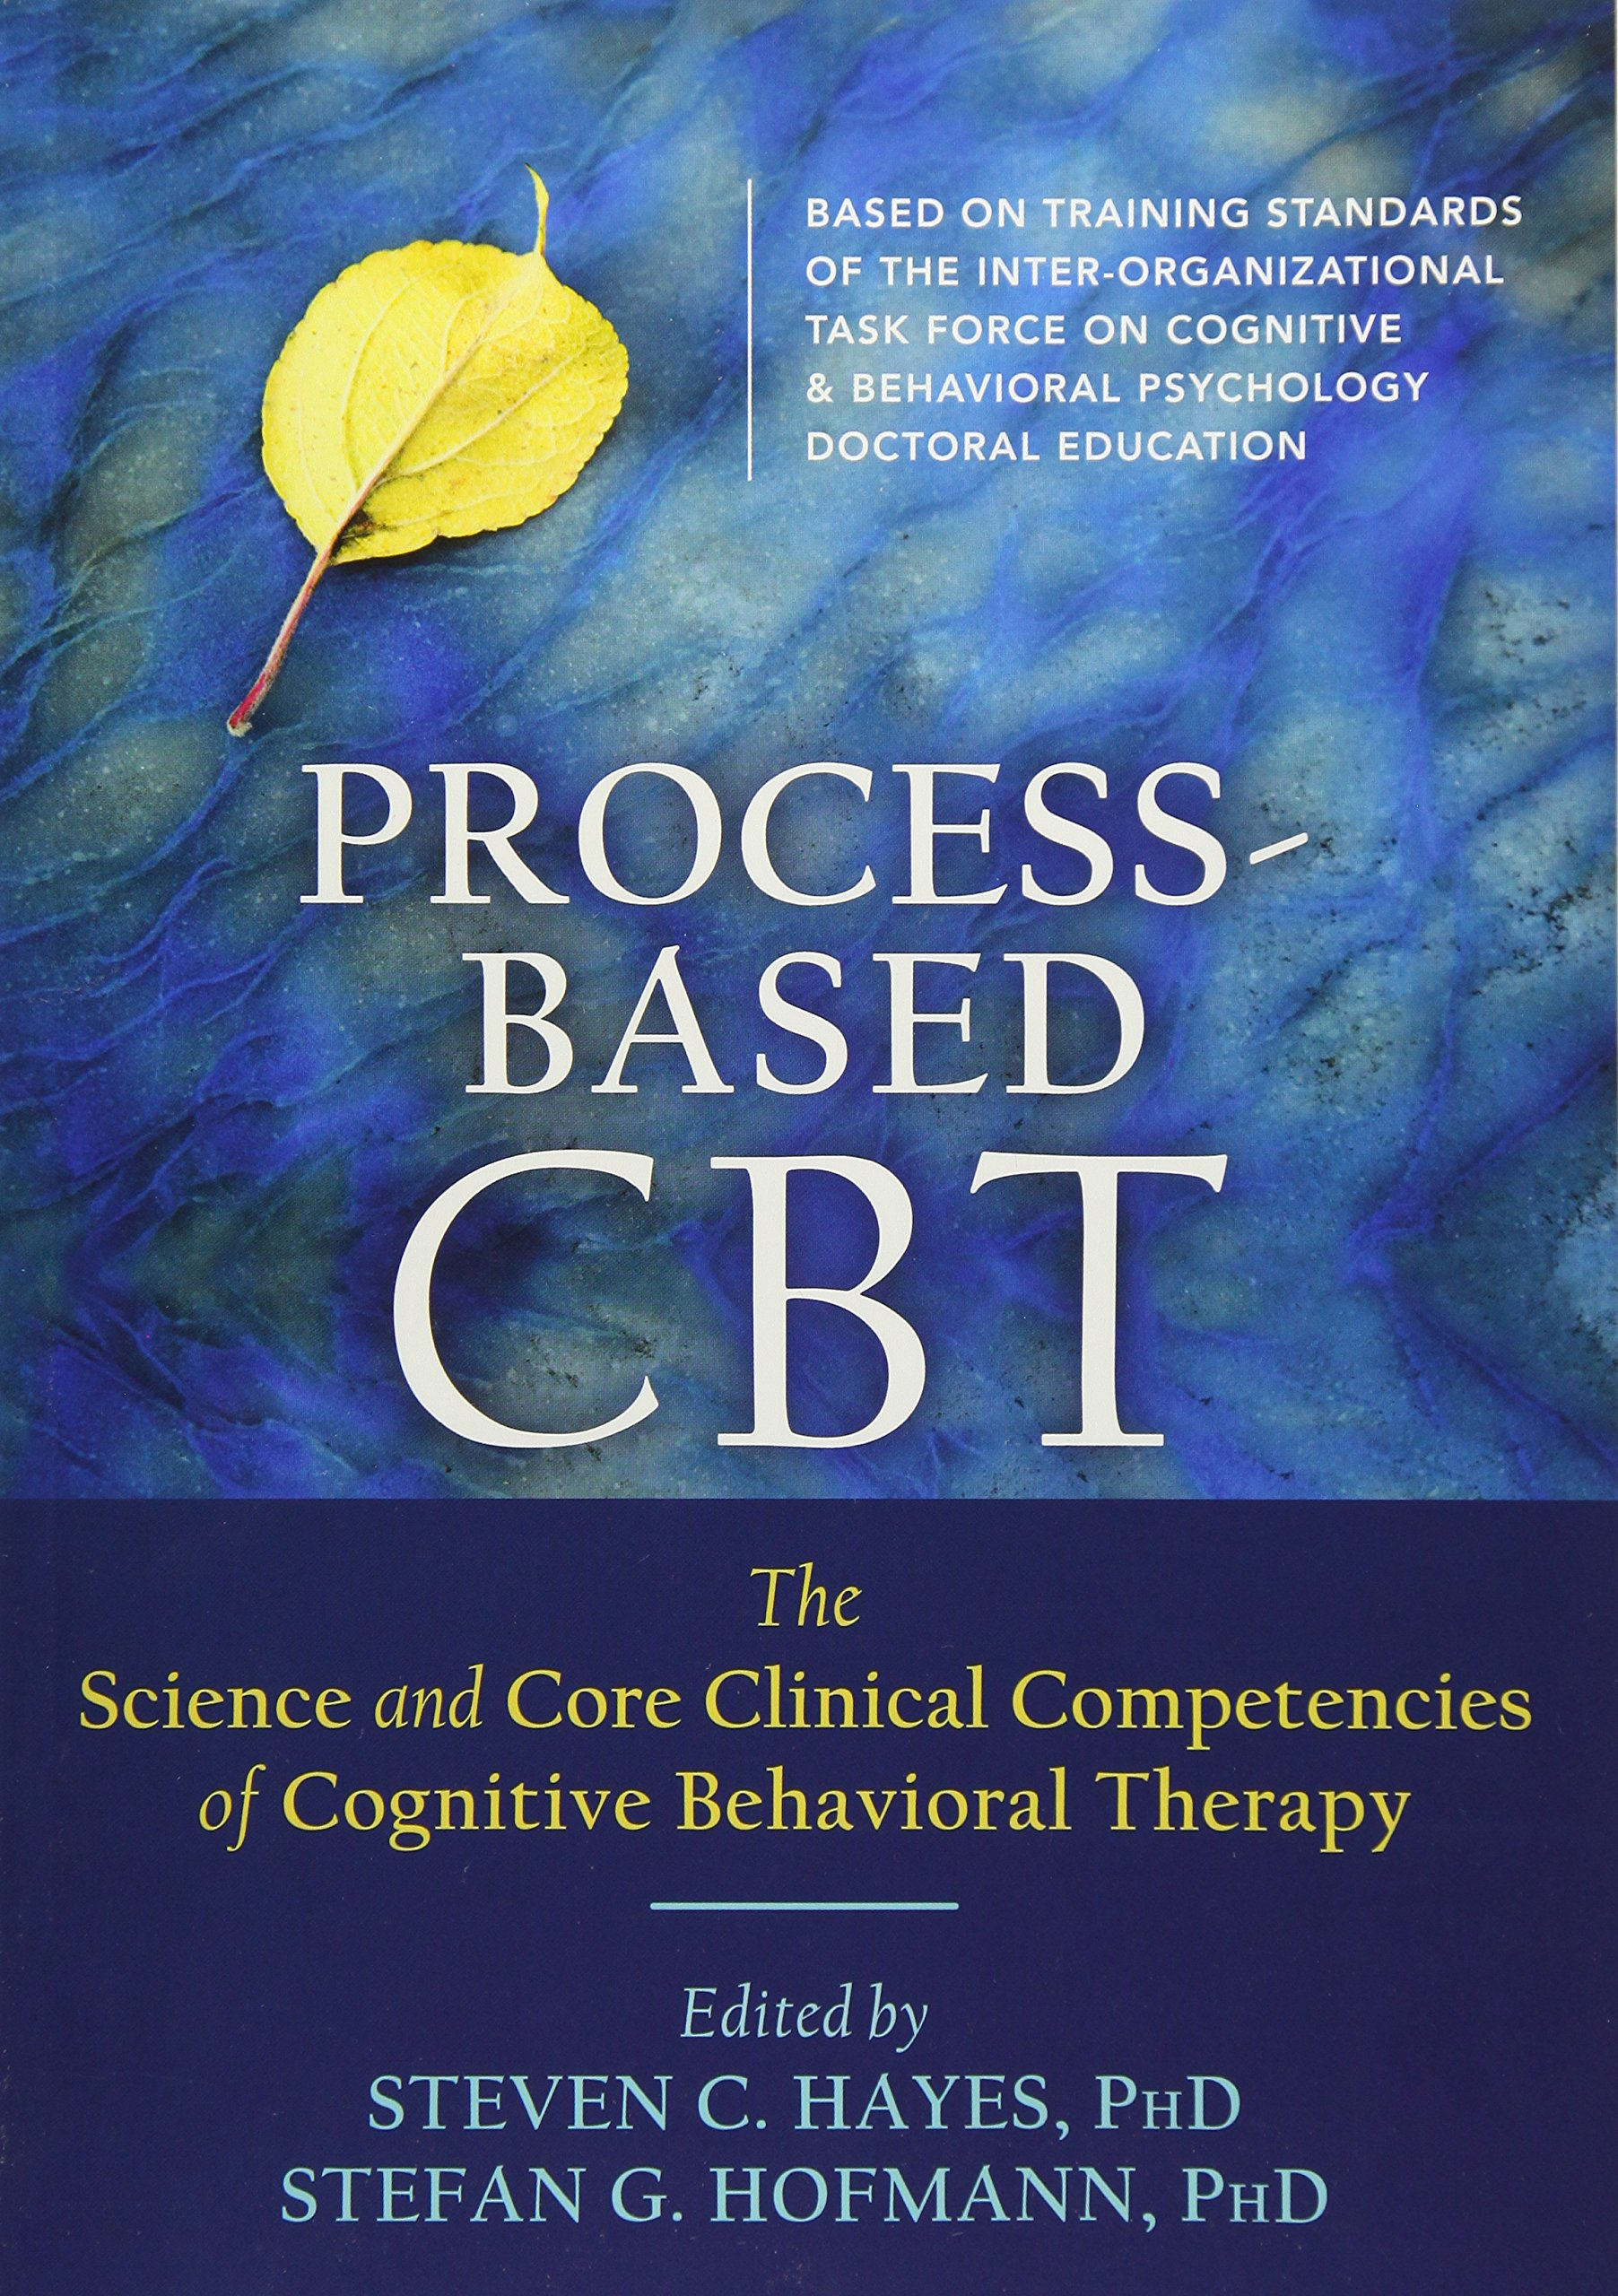 processbasedCBT cover